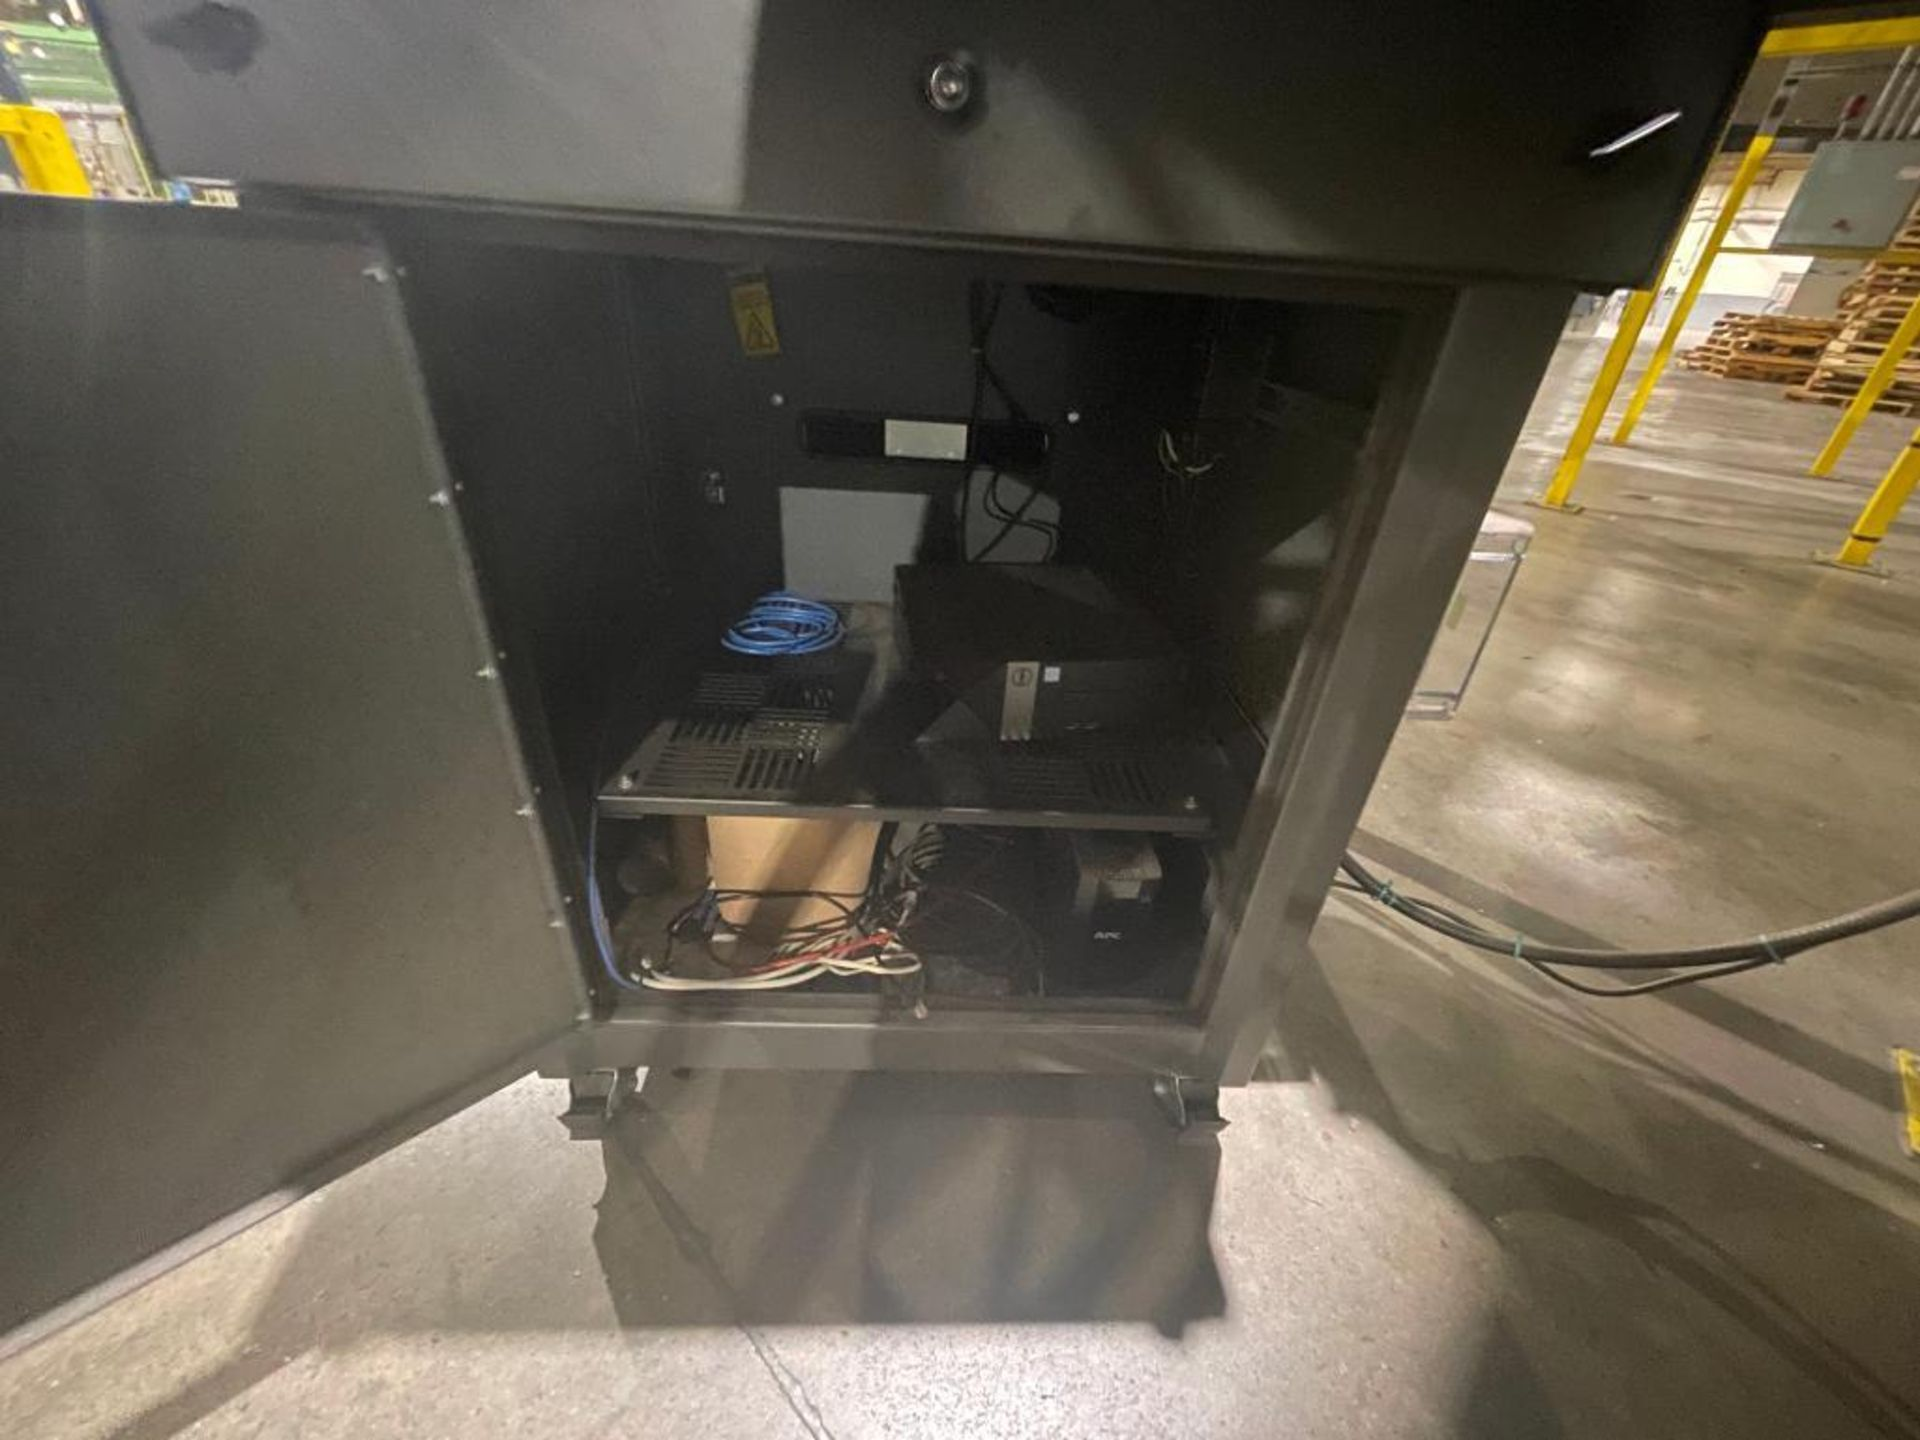 portable enclosed air conditioned computer cabinet - Image 11 of 16